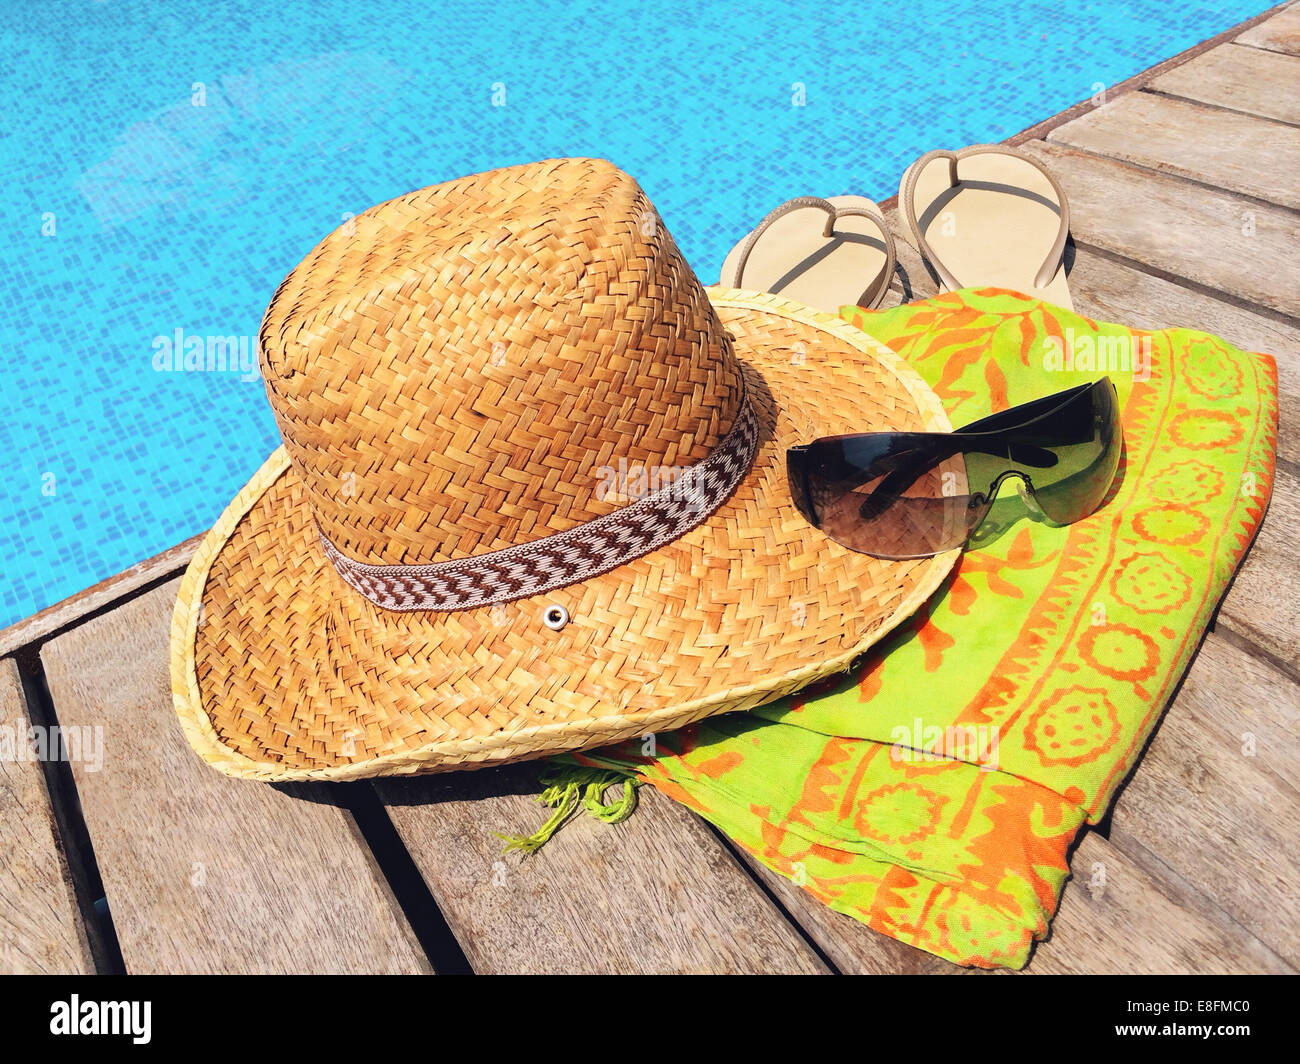 Straw hat, sunglasses, flip flops and sarong on wooden deck by swimming pool - Stock Image